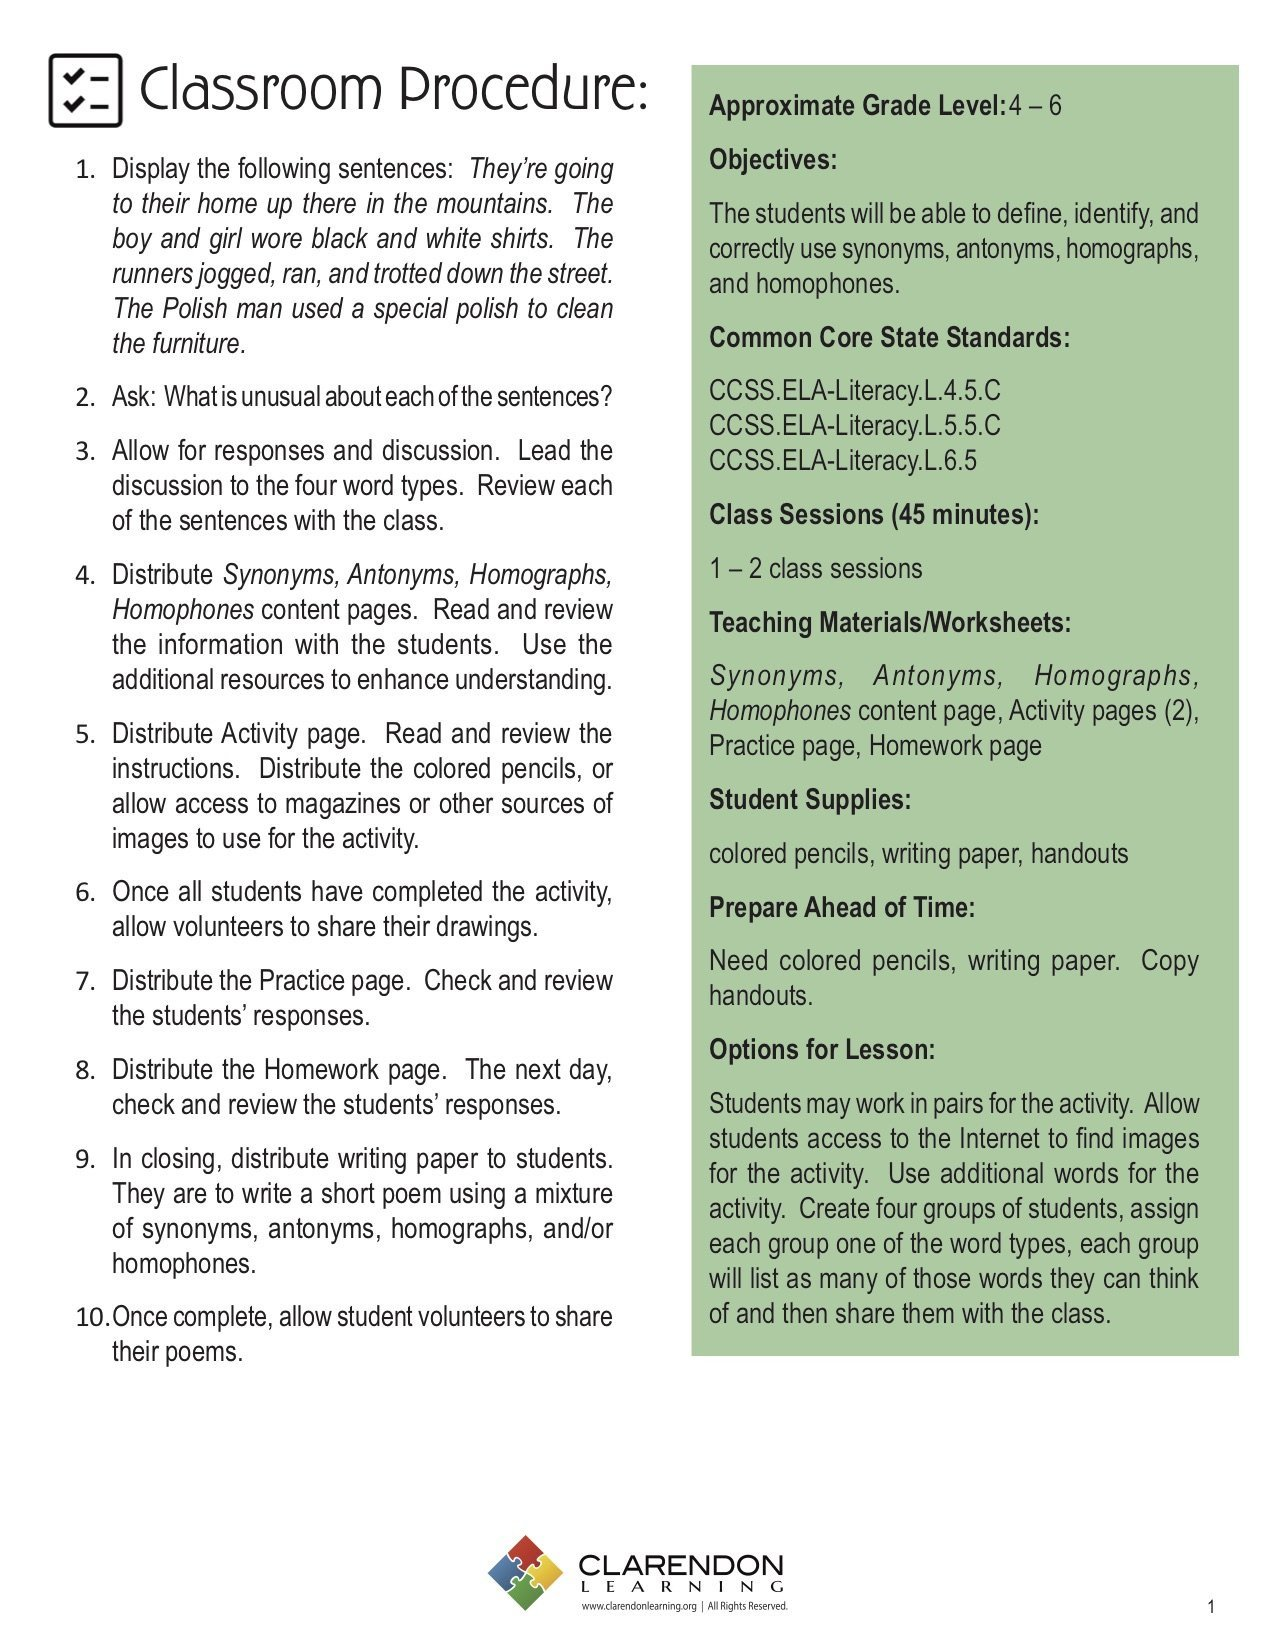 Homophones and Homographs Worksheets Synonyms Antonyms Homographs Homophones